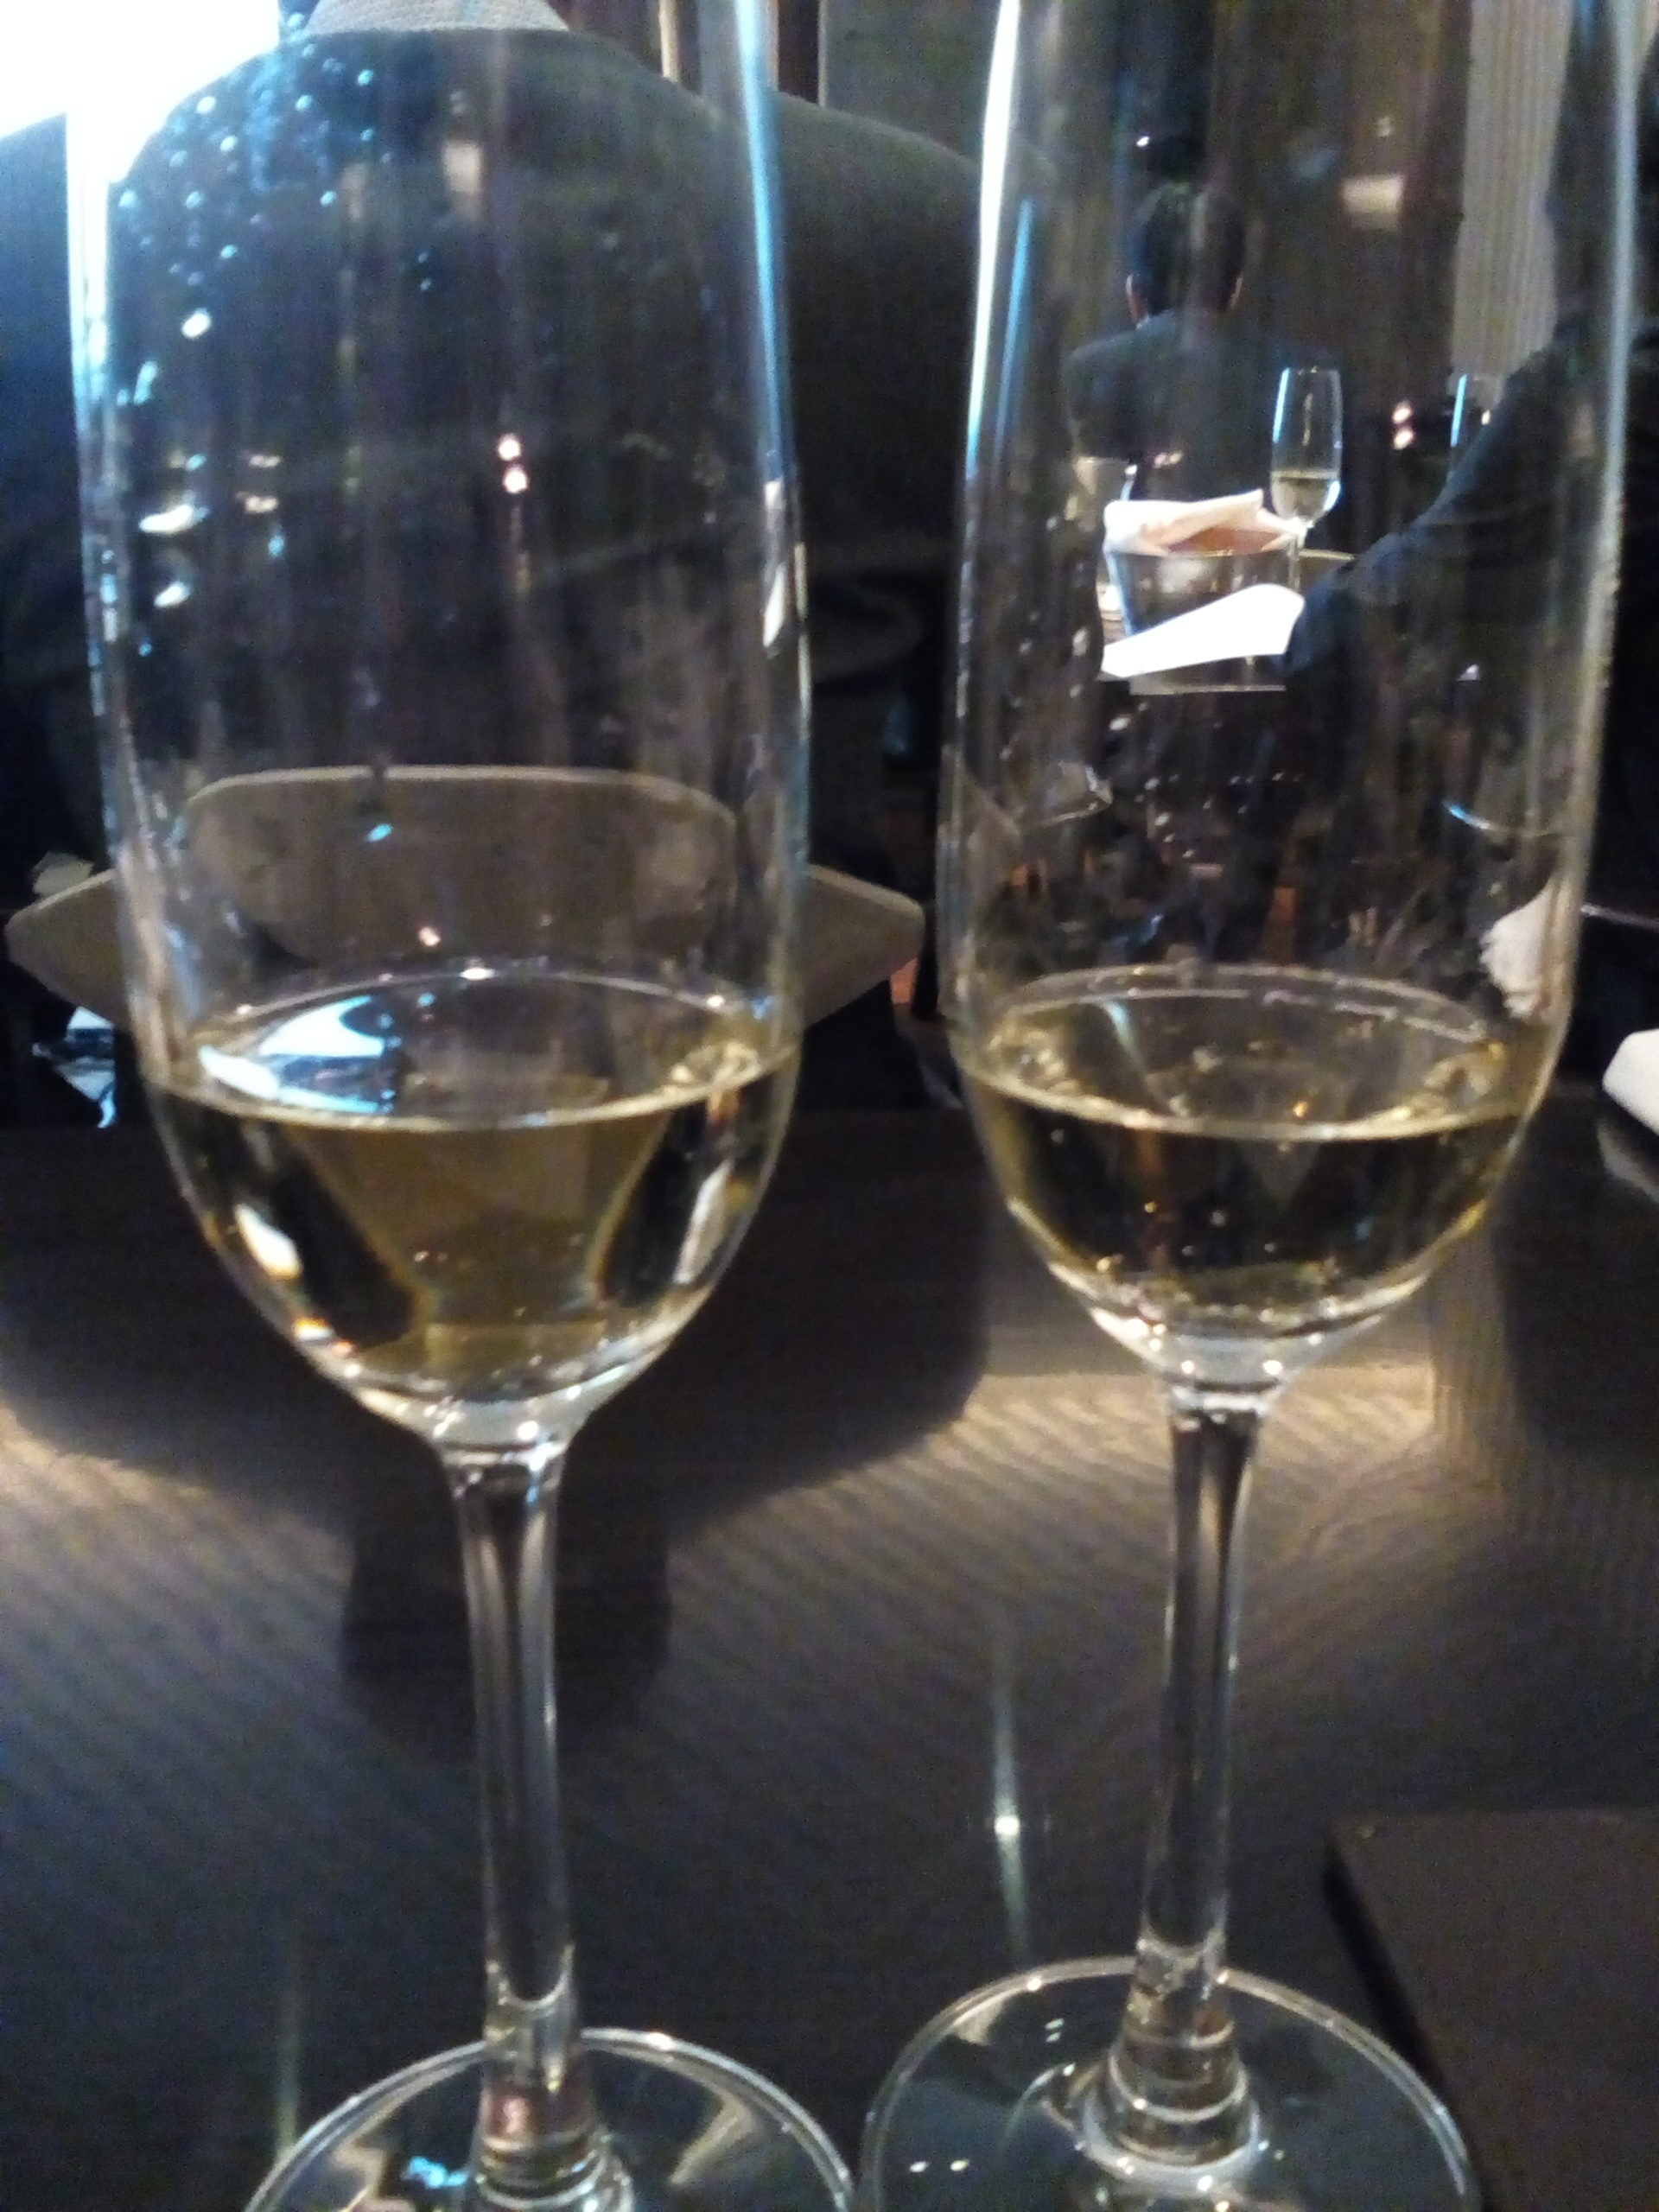 Brut NV and Cristal 2009 respectively